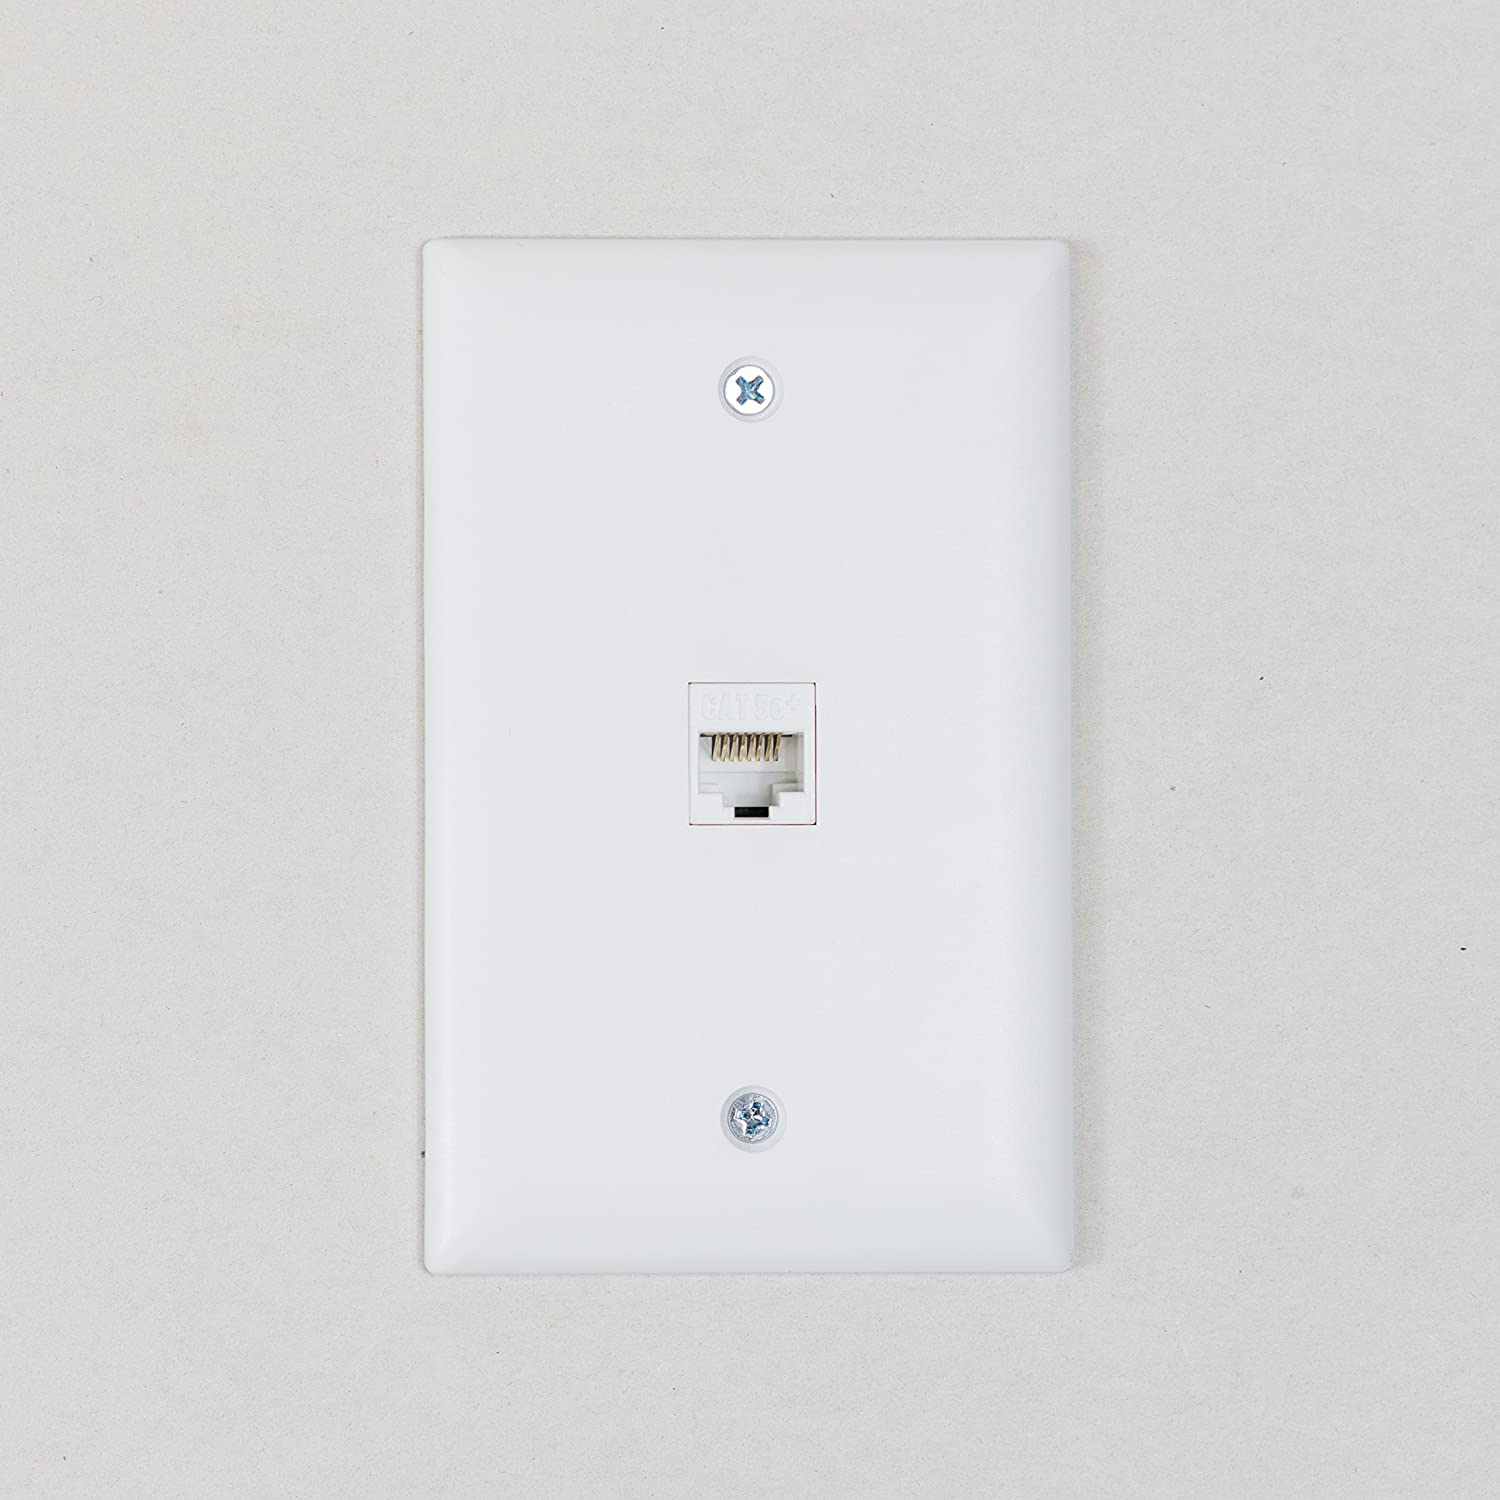 Legrand On Q Wp3475wh10 Cat5e Rj45 Quick Connect Keystone Insert Wall Jack Wiring Diagram R 568 With 110 Punch Down 10 Pack White